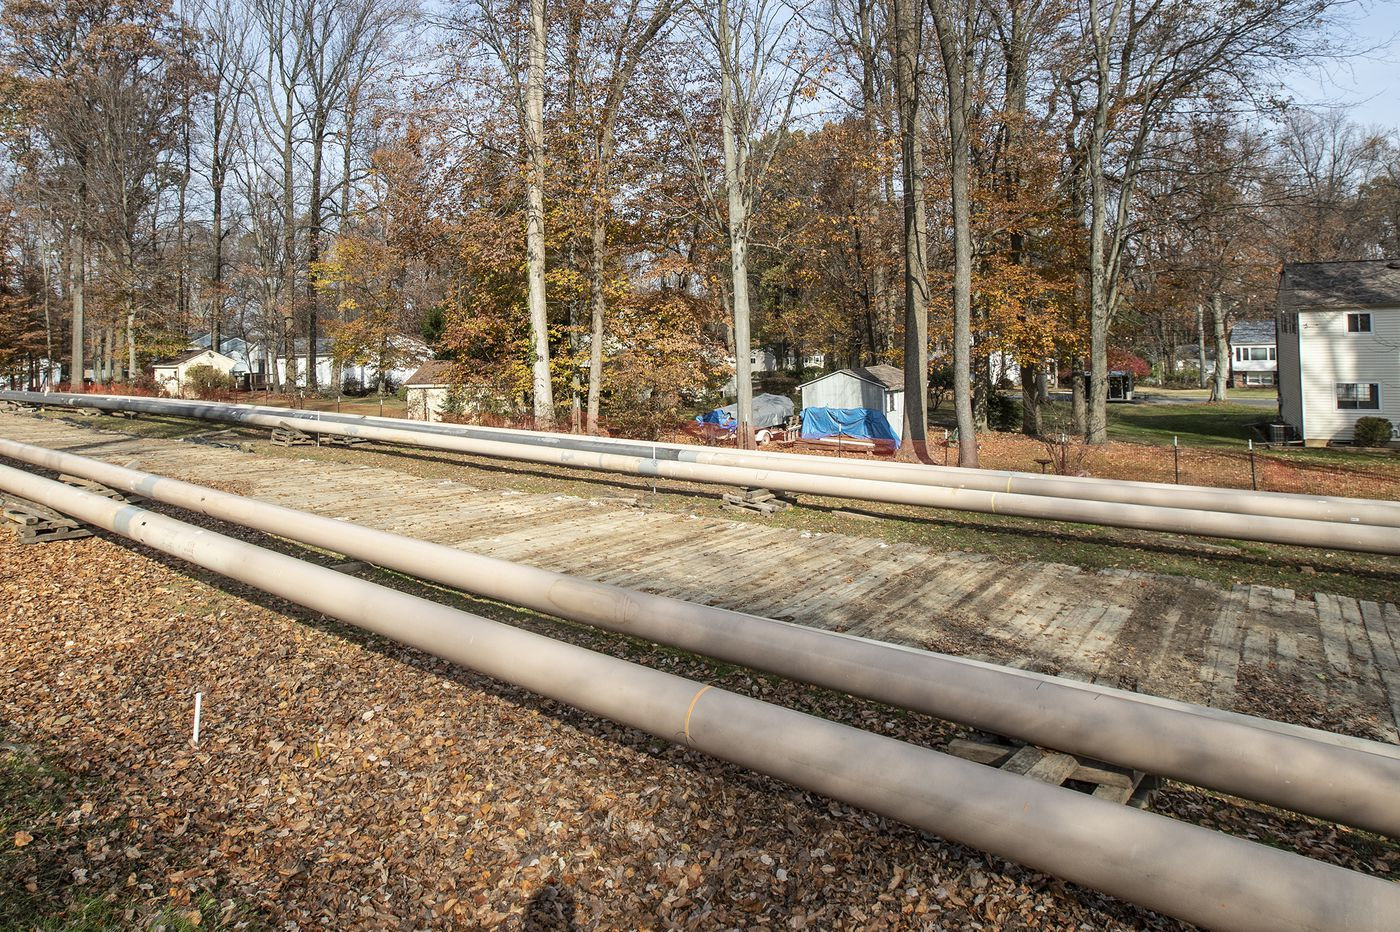 Pa. approves $200,000 fine and orders 'remaining life' study of leaky 89-year-old Sunoco pipeline